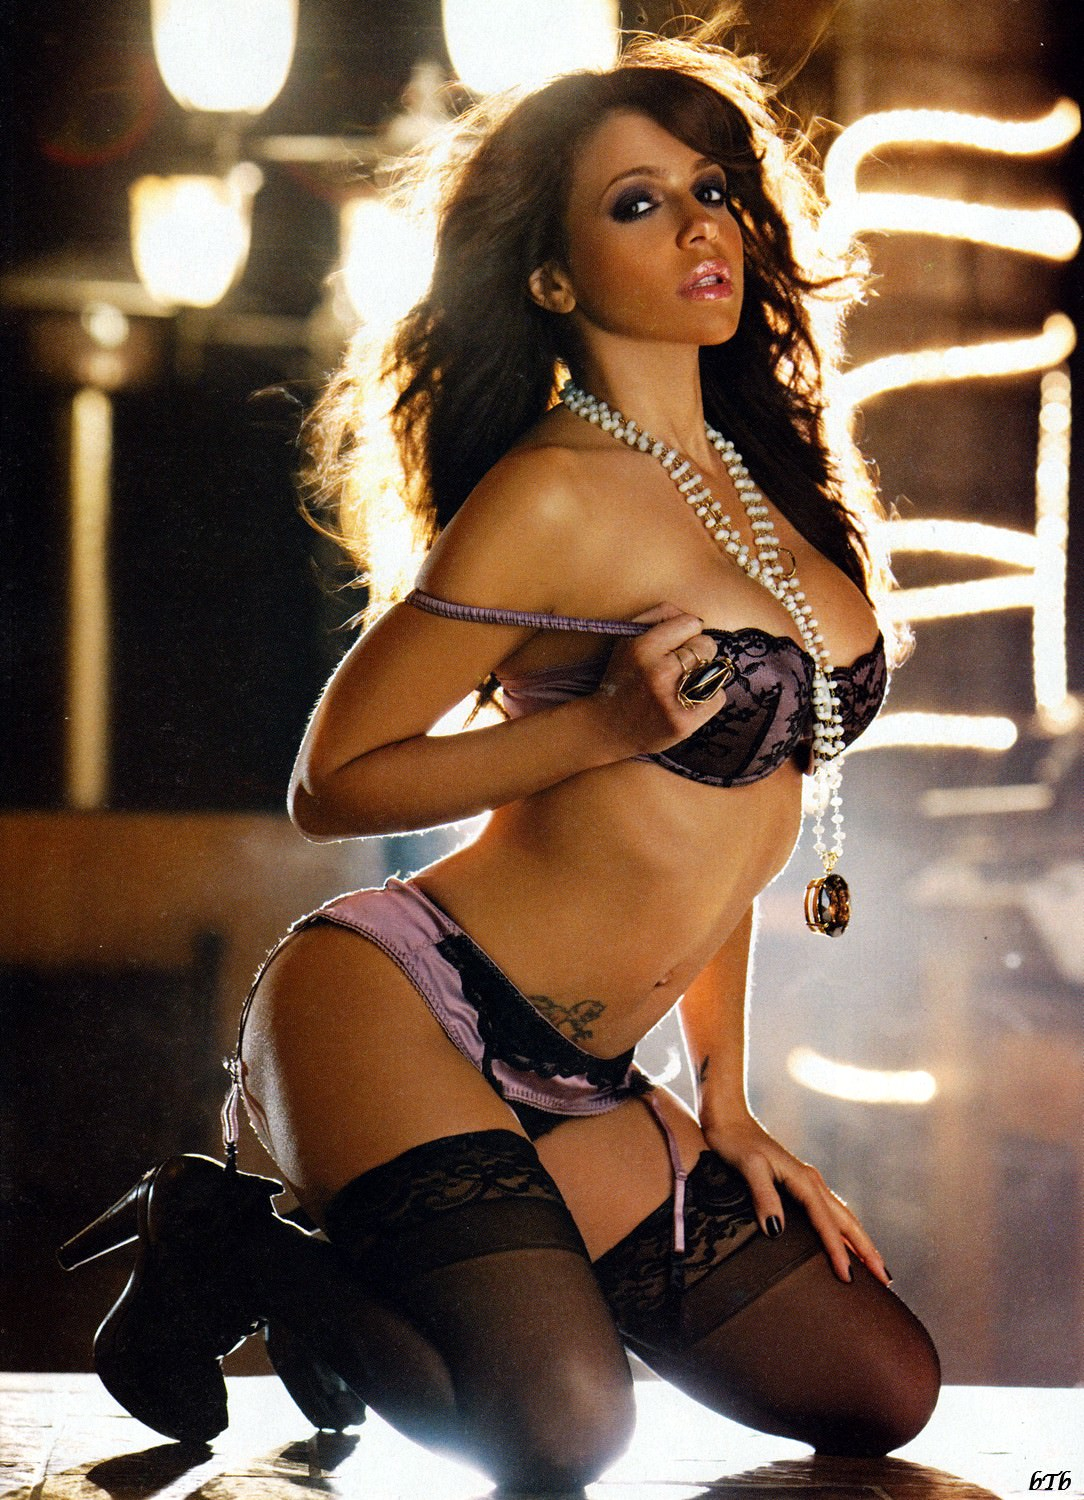 With Vida guerra photo gallery opinion, you